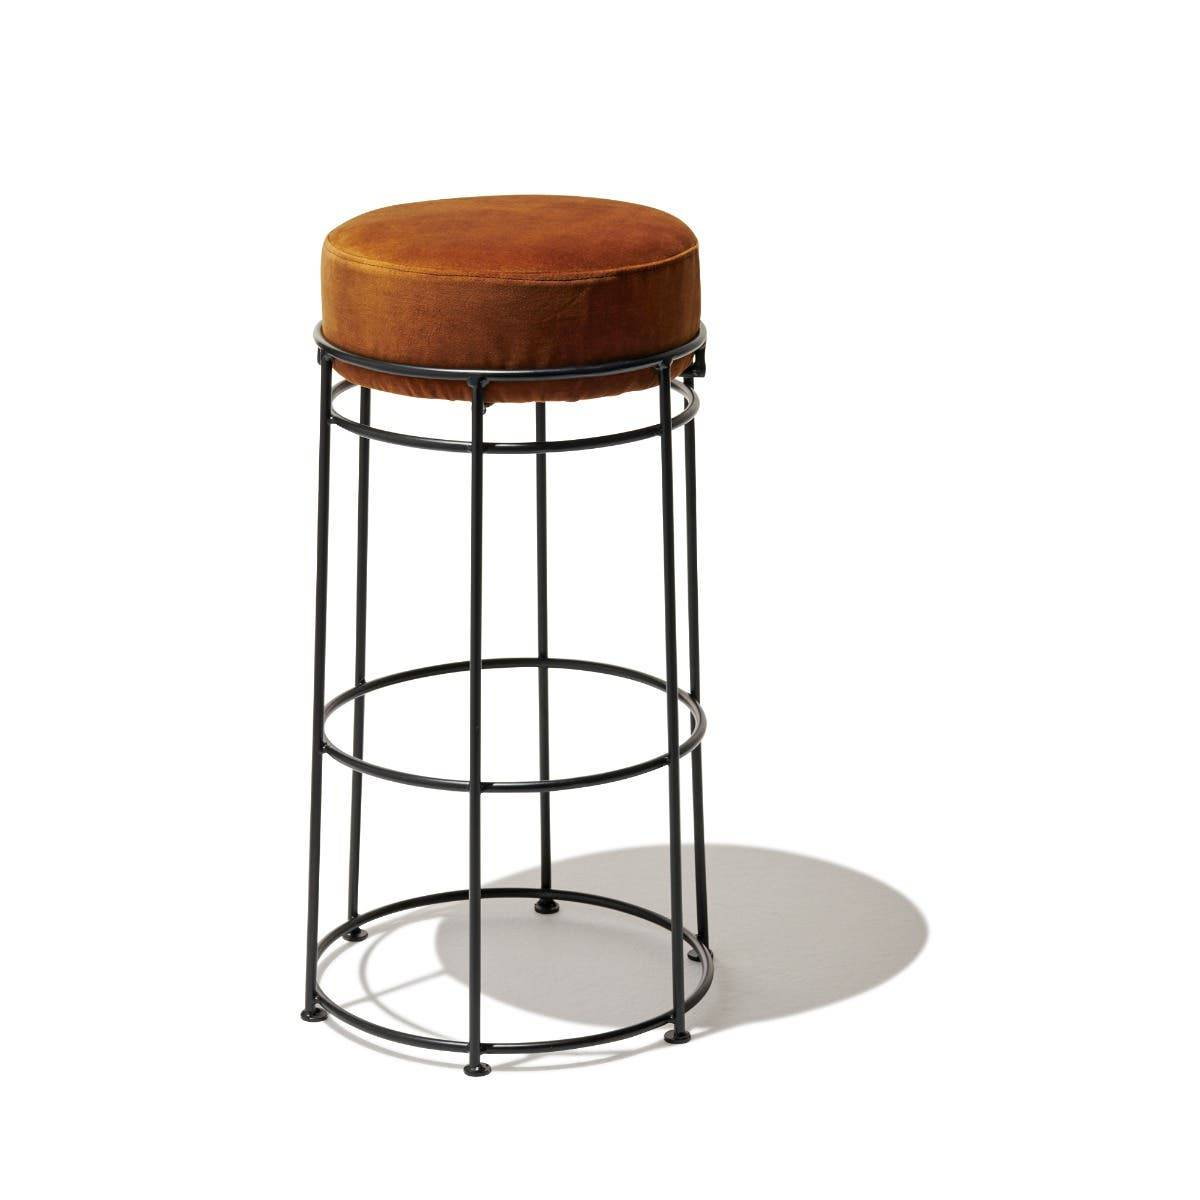 Industry West Rosa Bar Stool